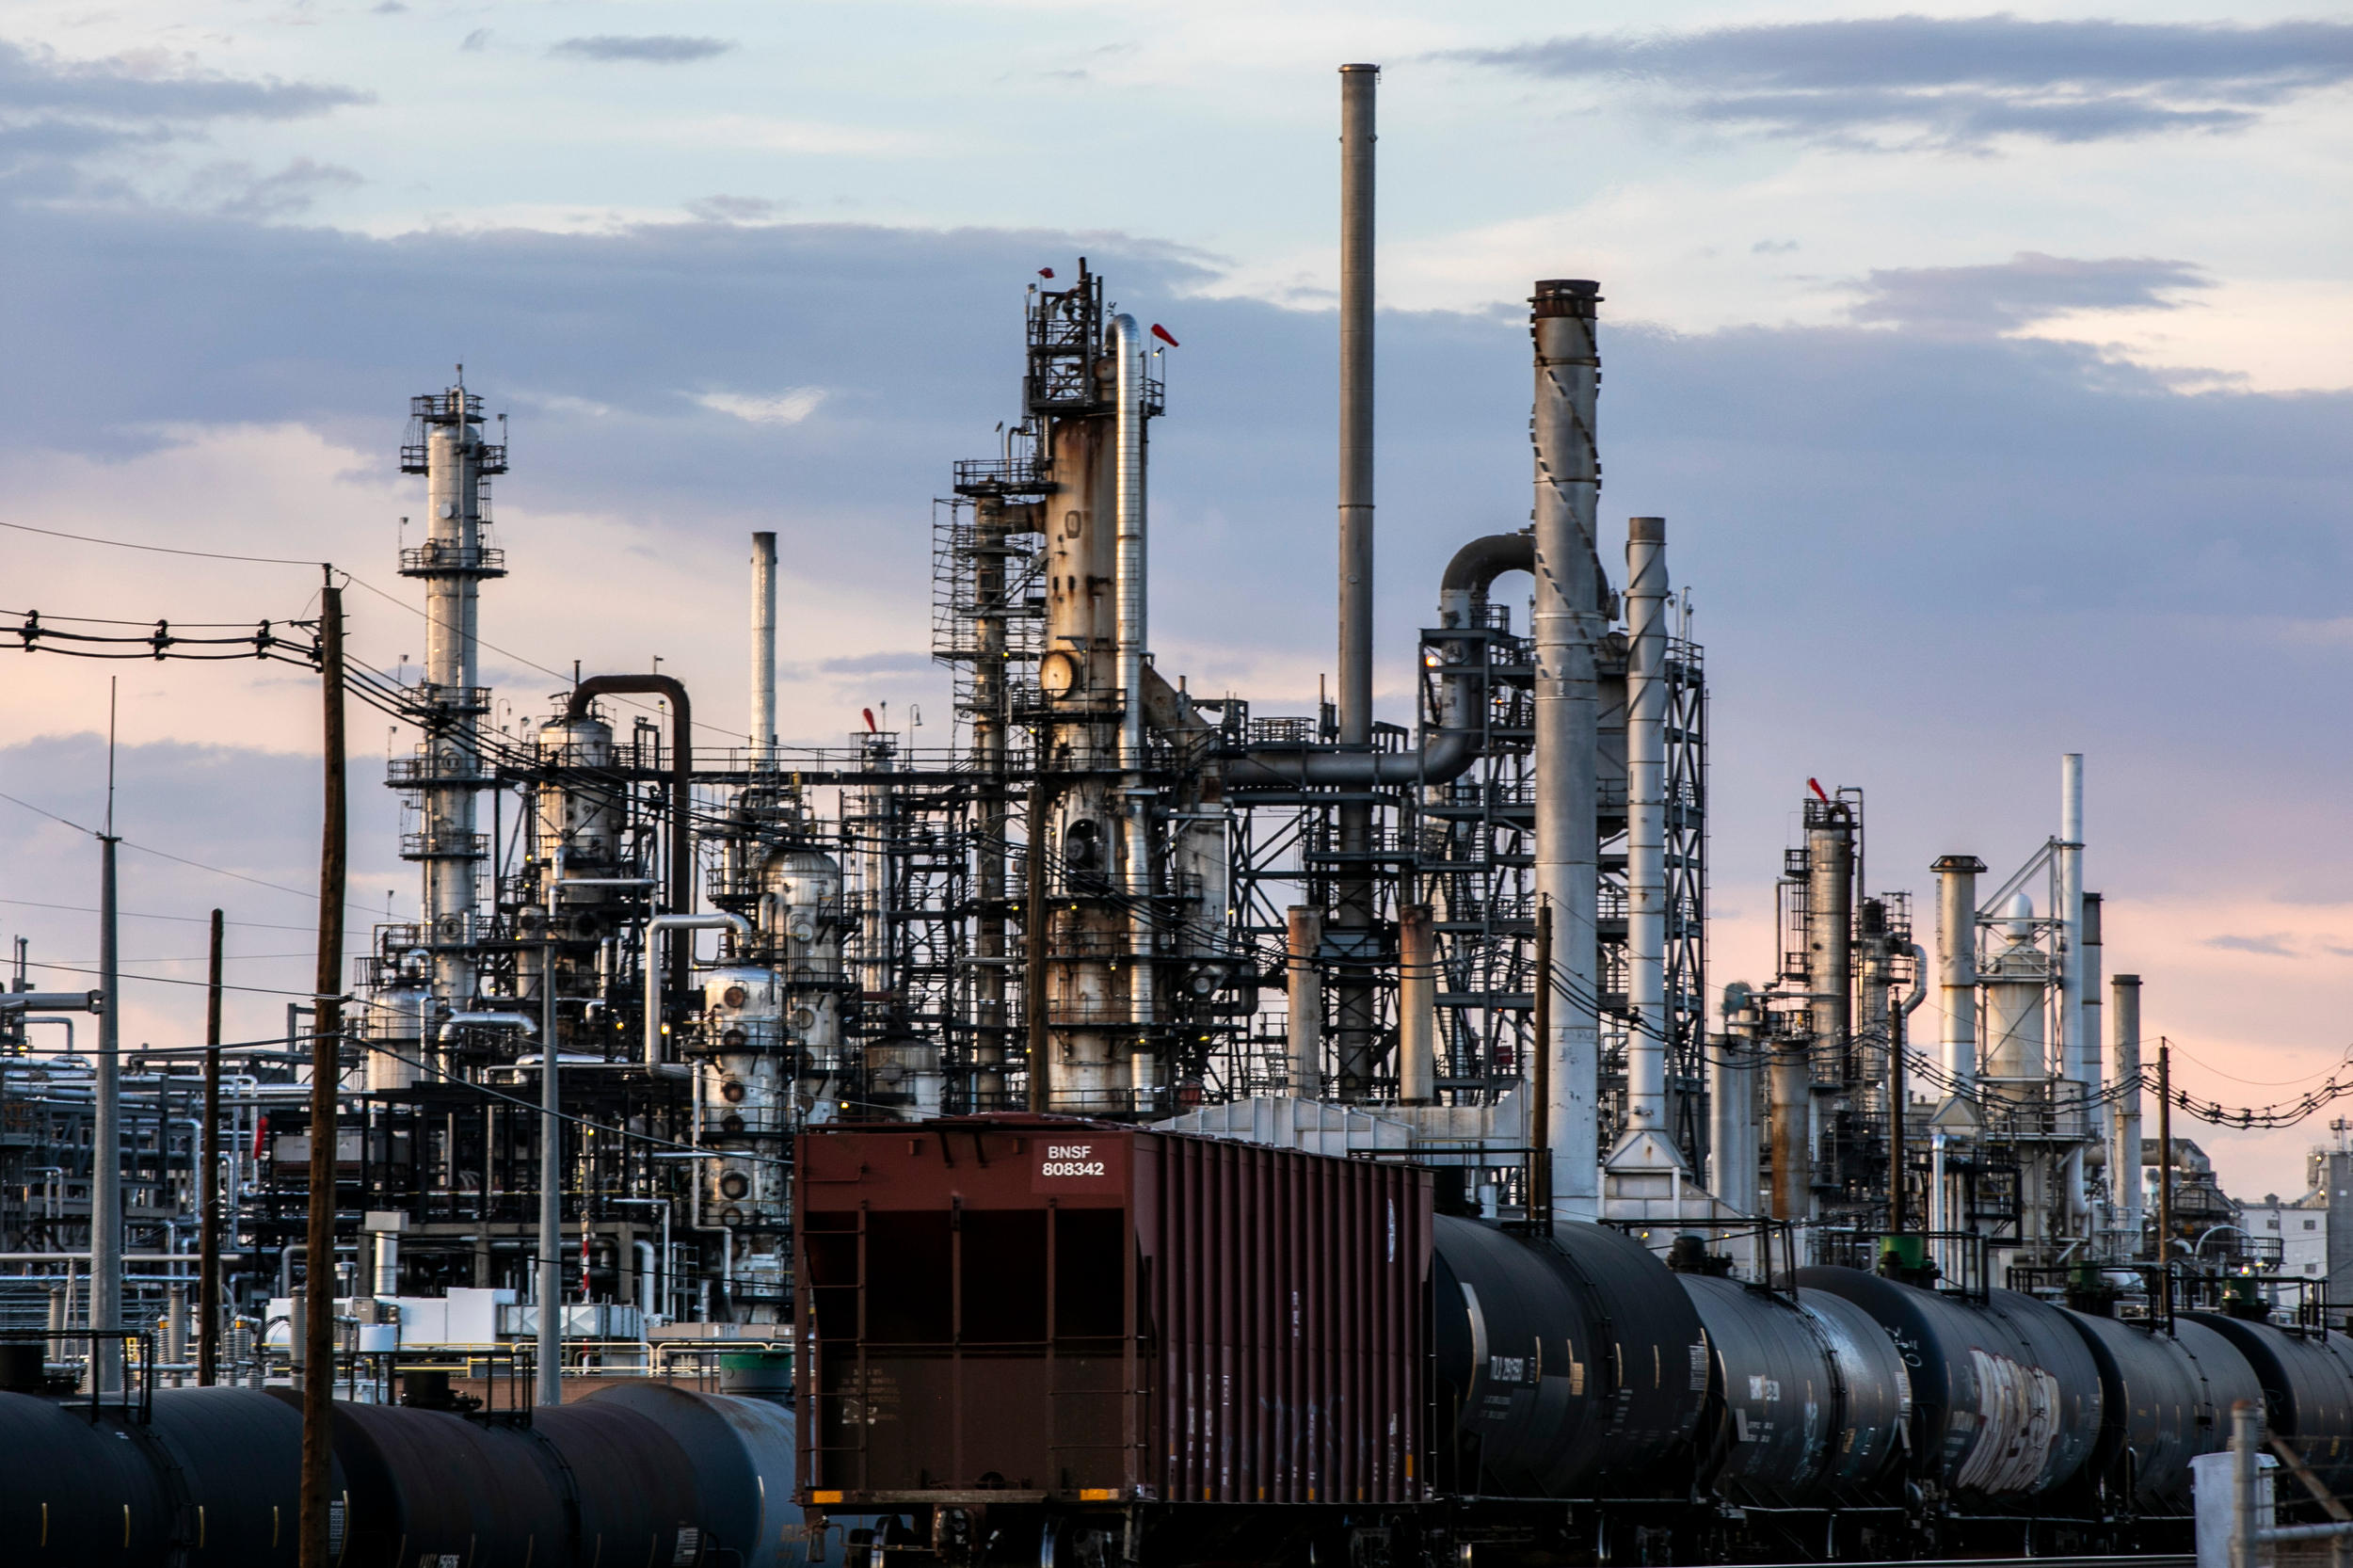 Suncor Oil Refinery